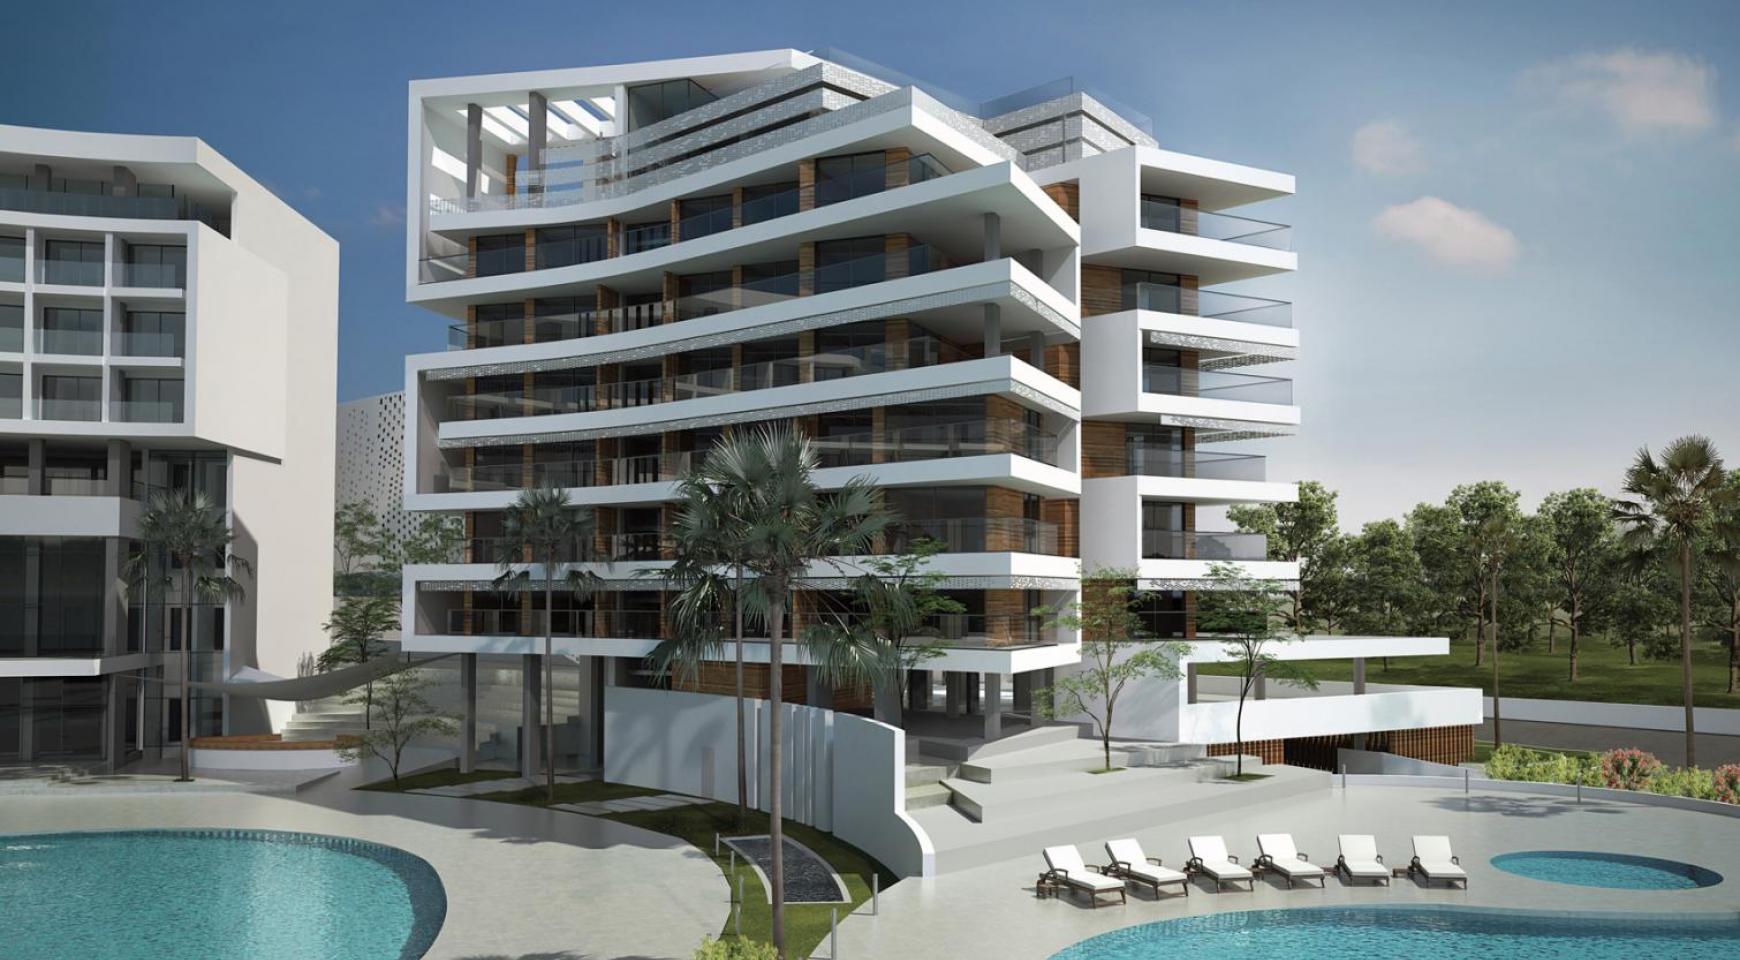 Contemporary 4 Bedroom Villa in a New Project by the Sea - 20